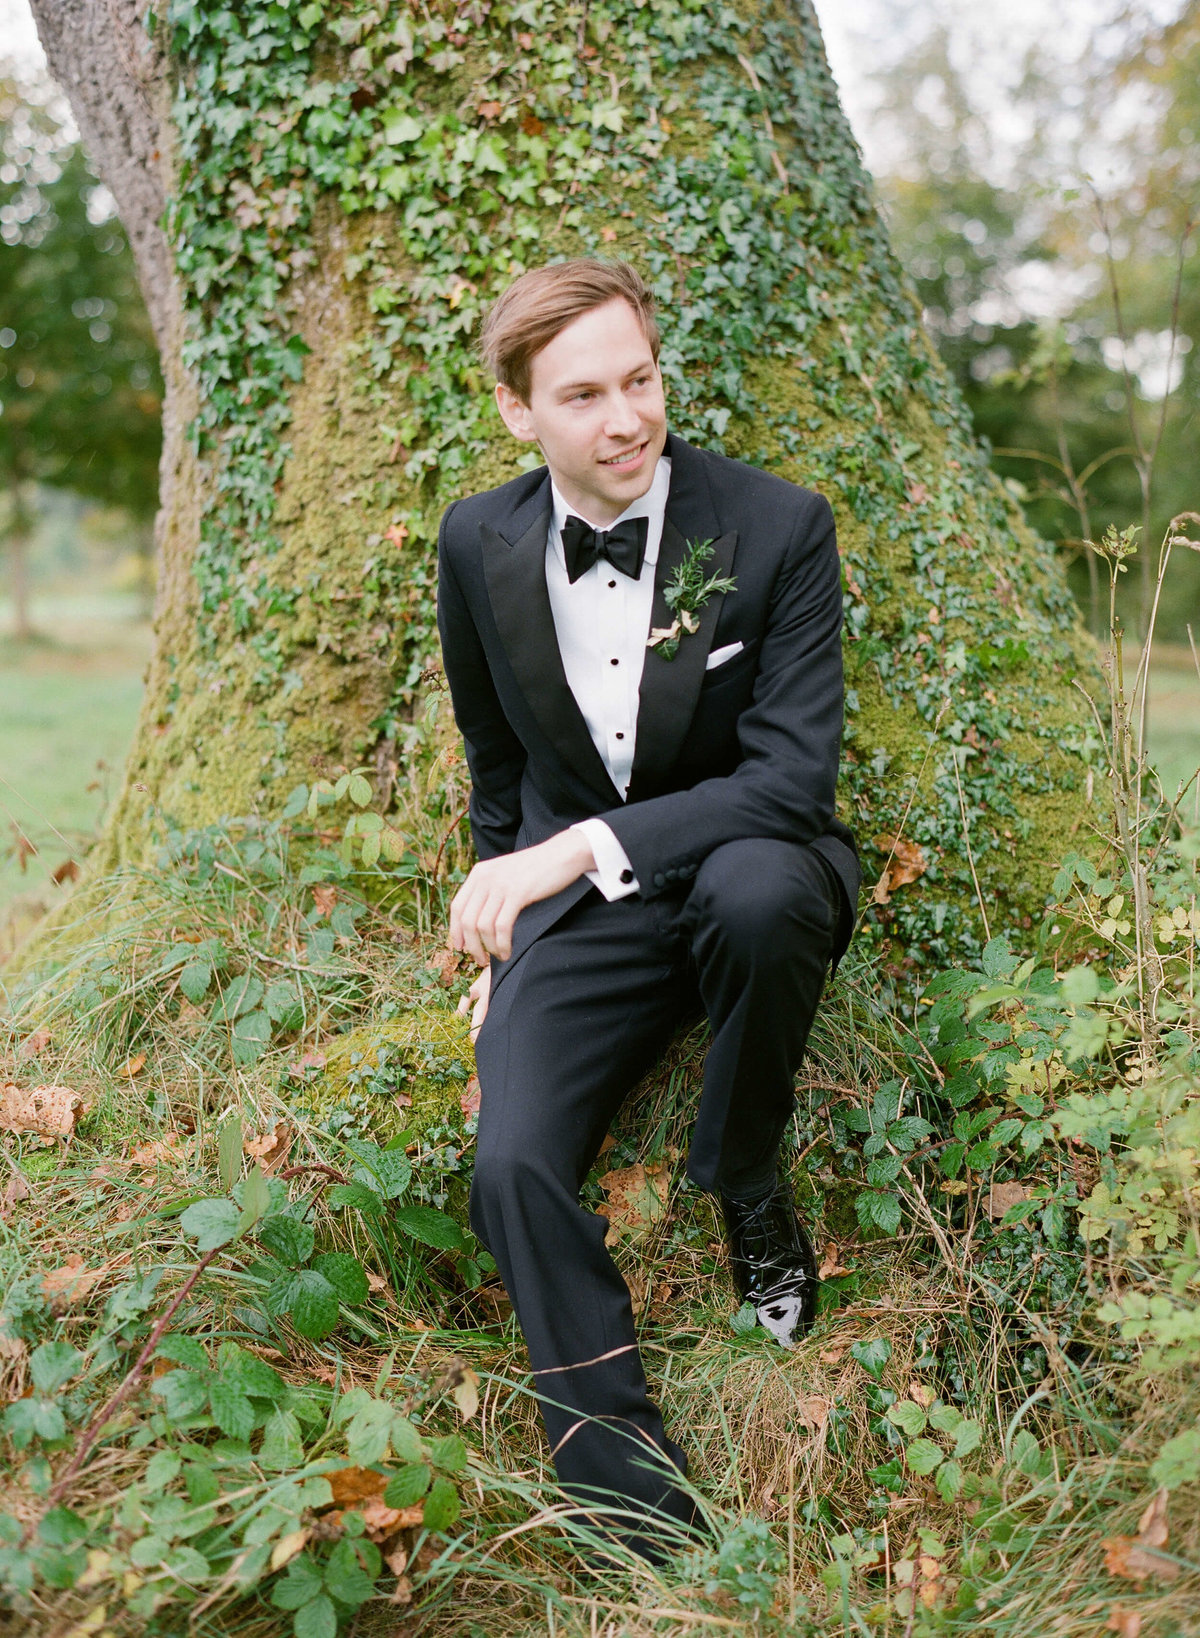 40-KTMerry-weddings-groom-against-tree-Ireland